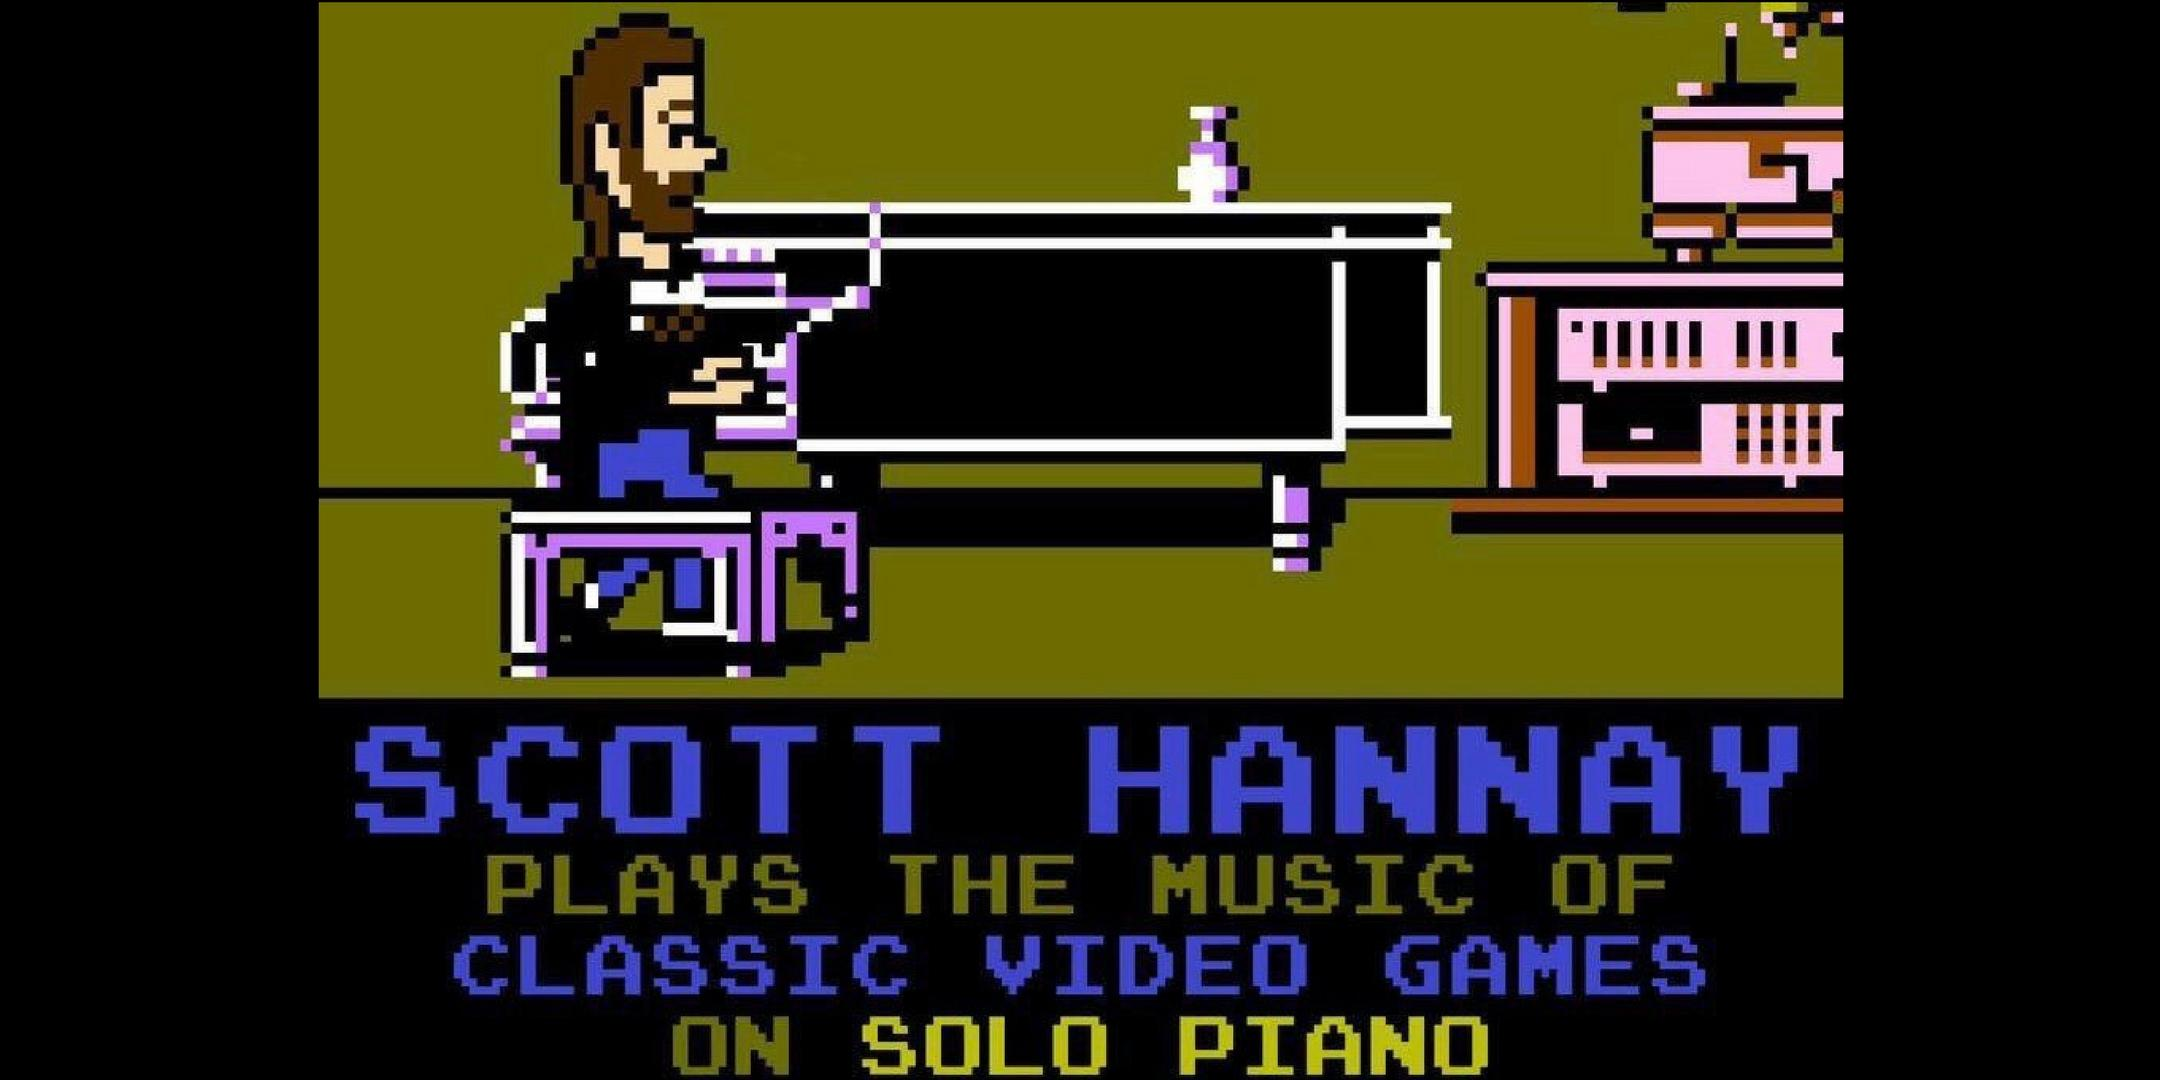 Scott Hannay of Mister F (Playing the music of Nintendo Games on a Solo Piano)